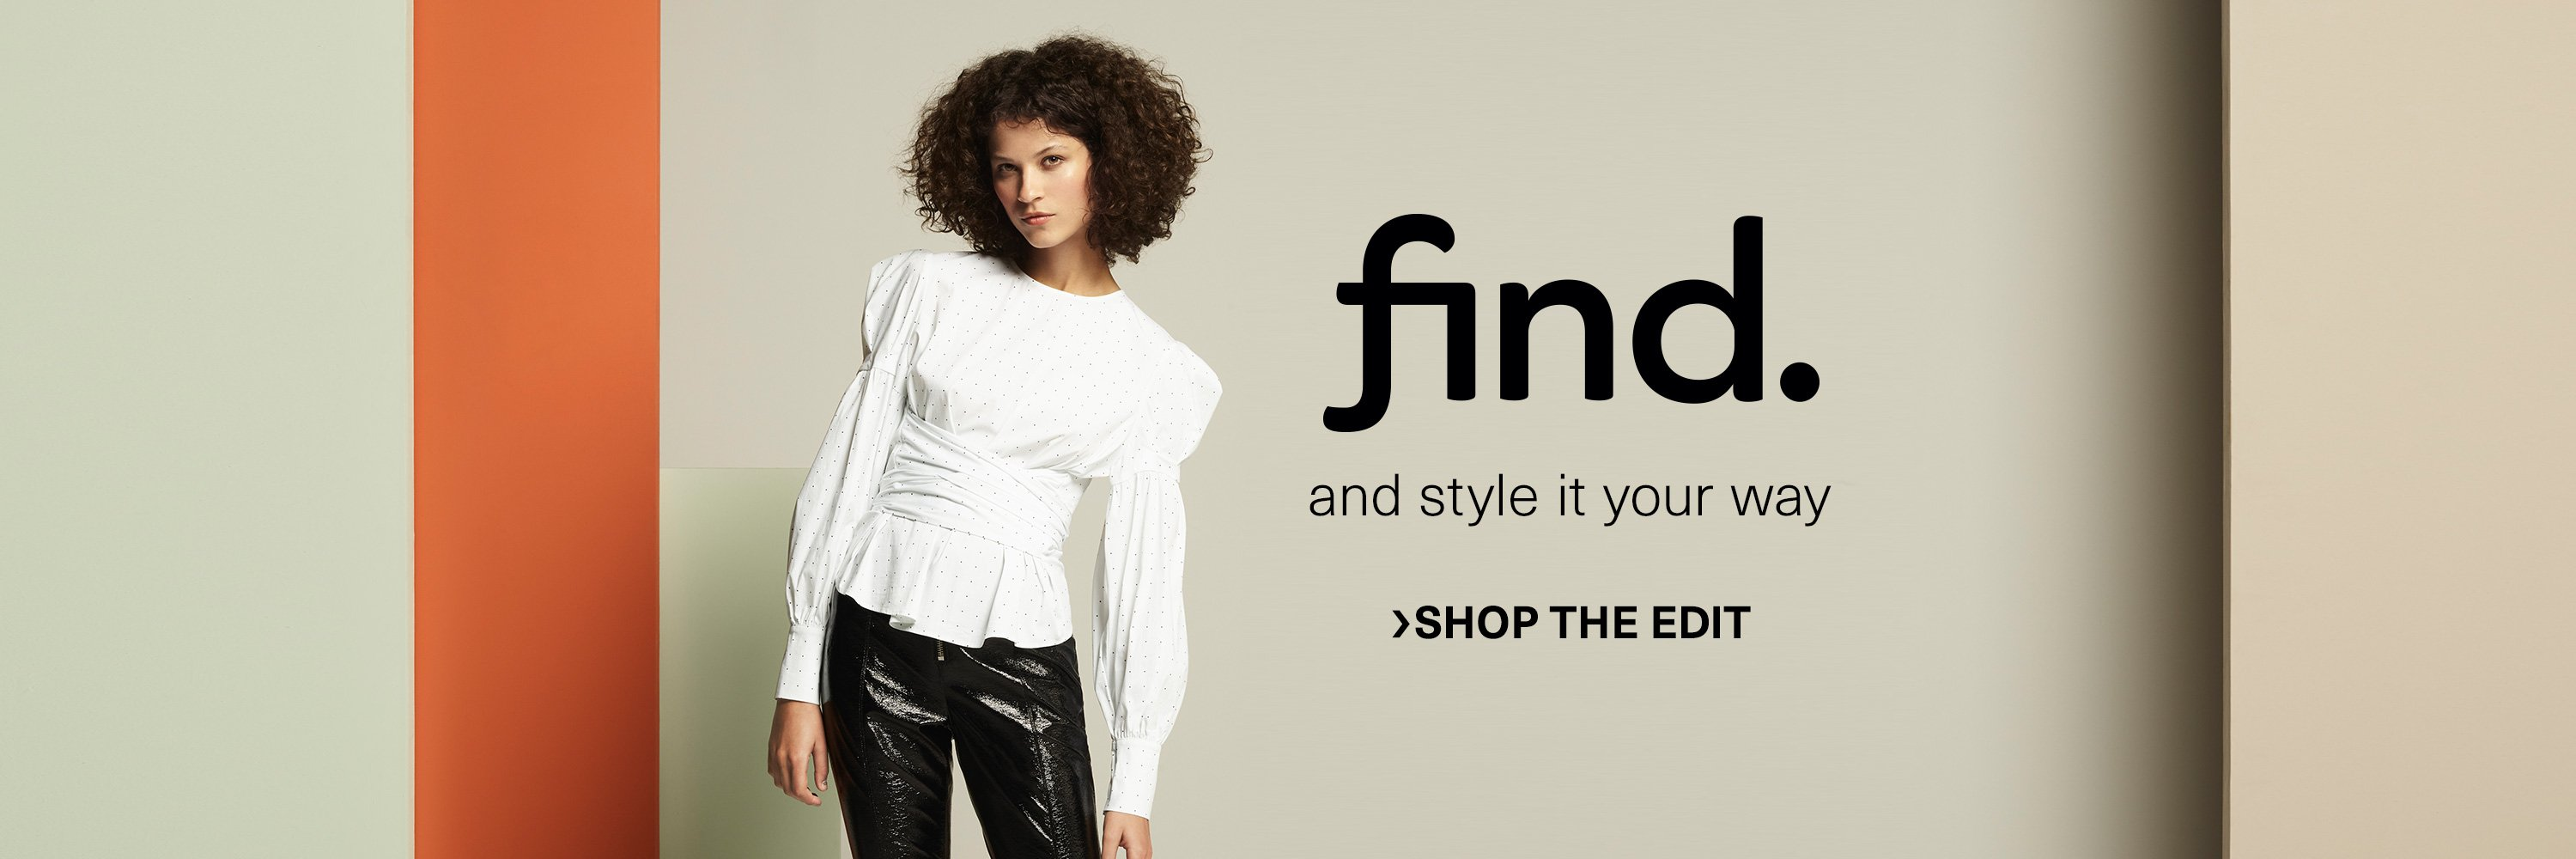 find. Shop the edit